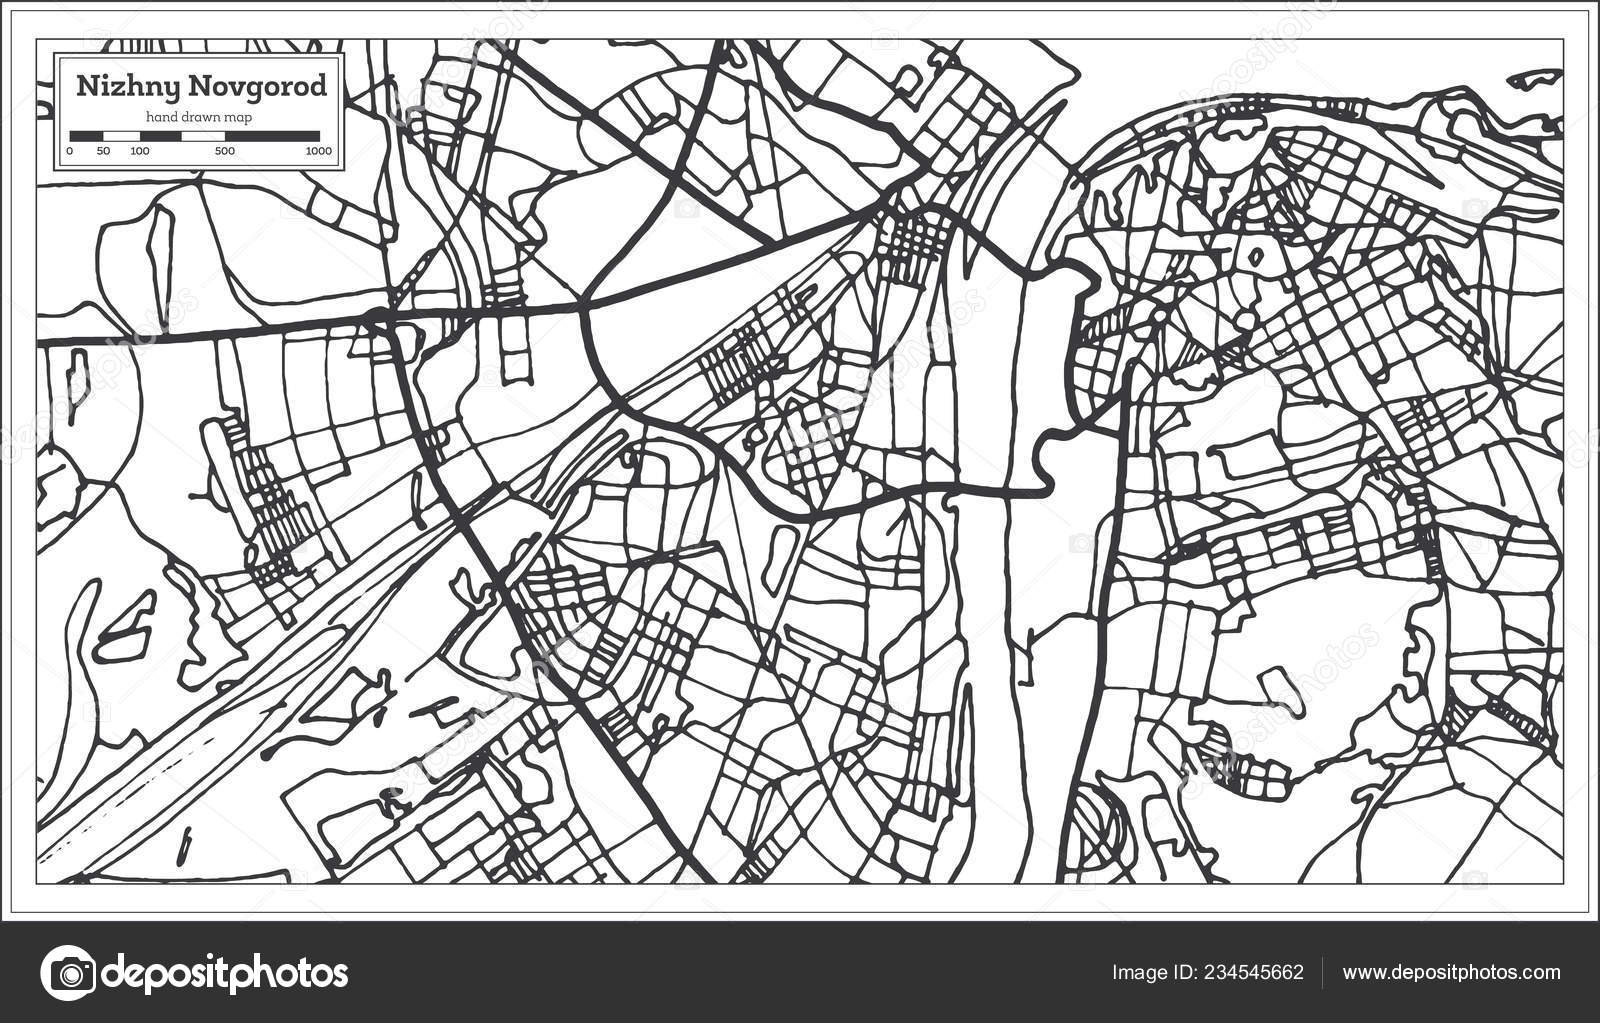 Novgorod Russia Map.Nizhny Novgorod Russia City Map Retro Style Outline Map Vector